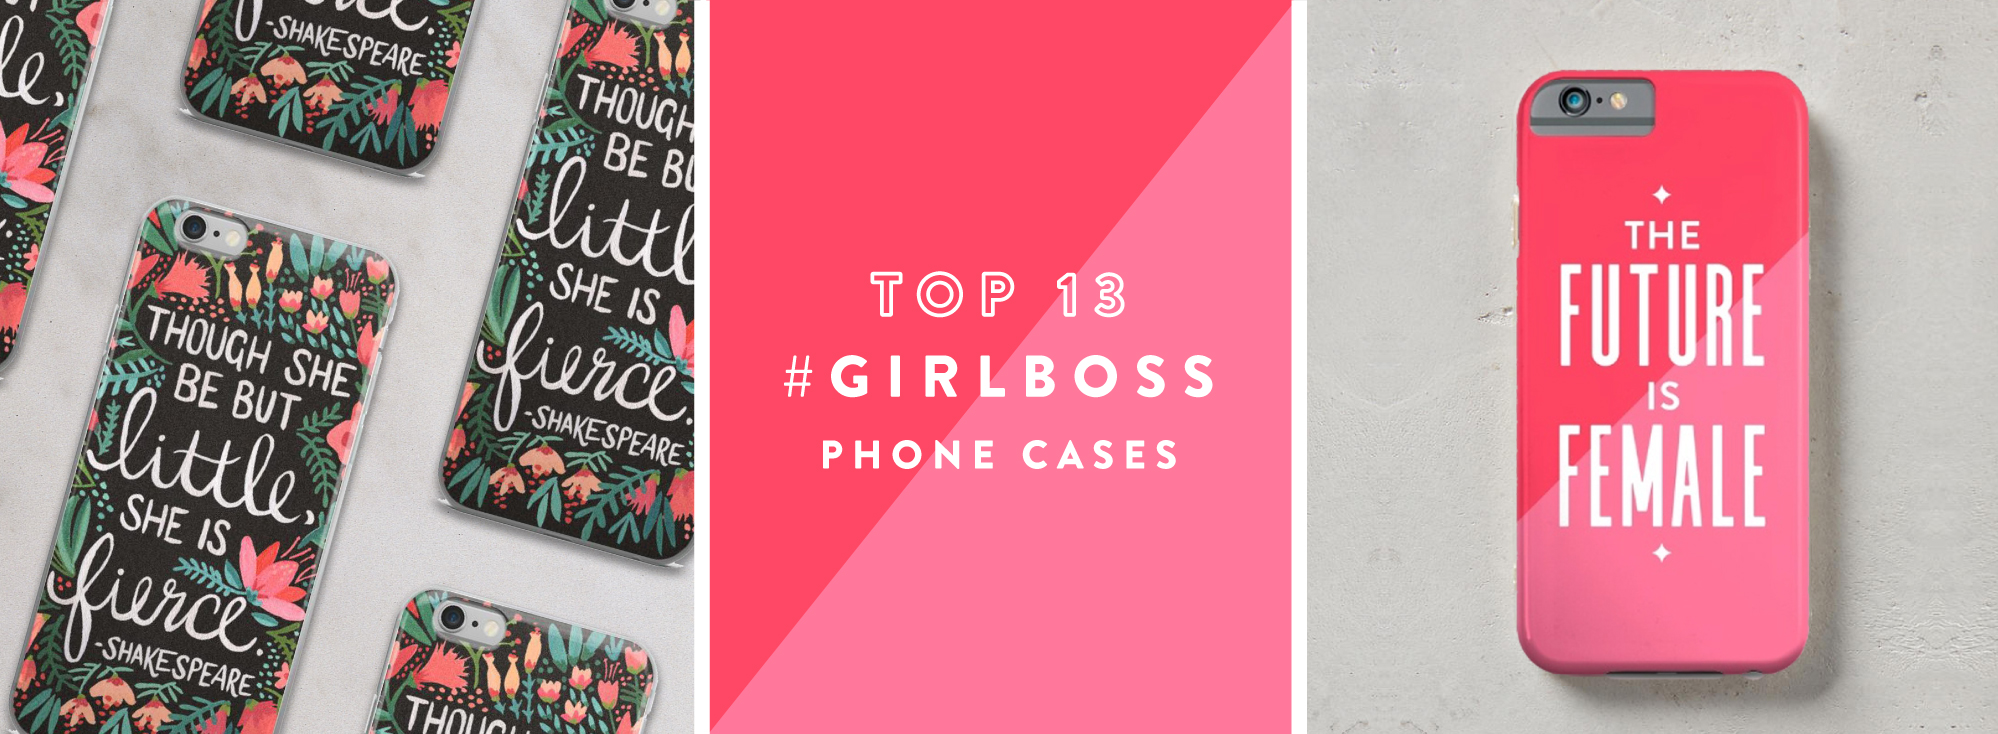 Phone-Cases-for-Girl-Bosses-header.jpg